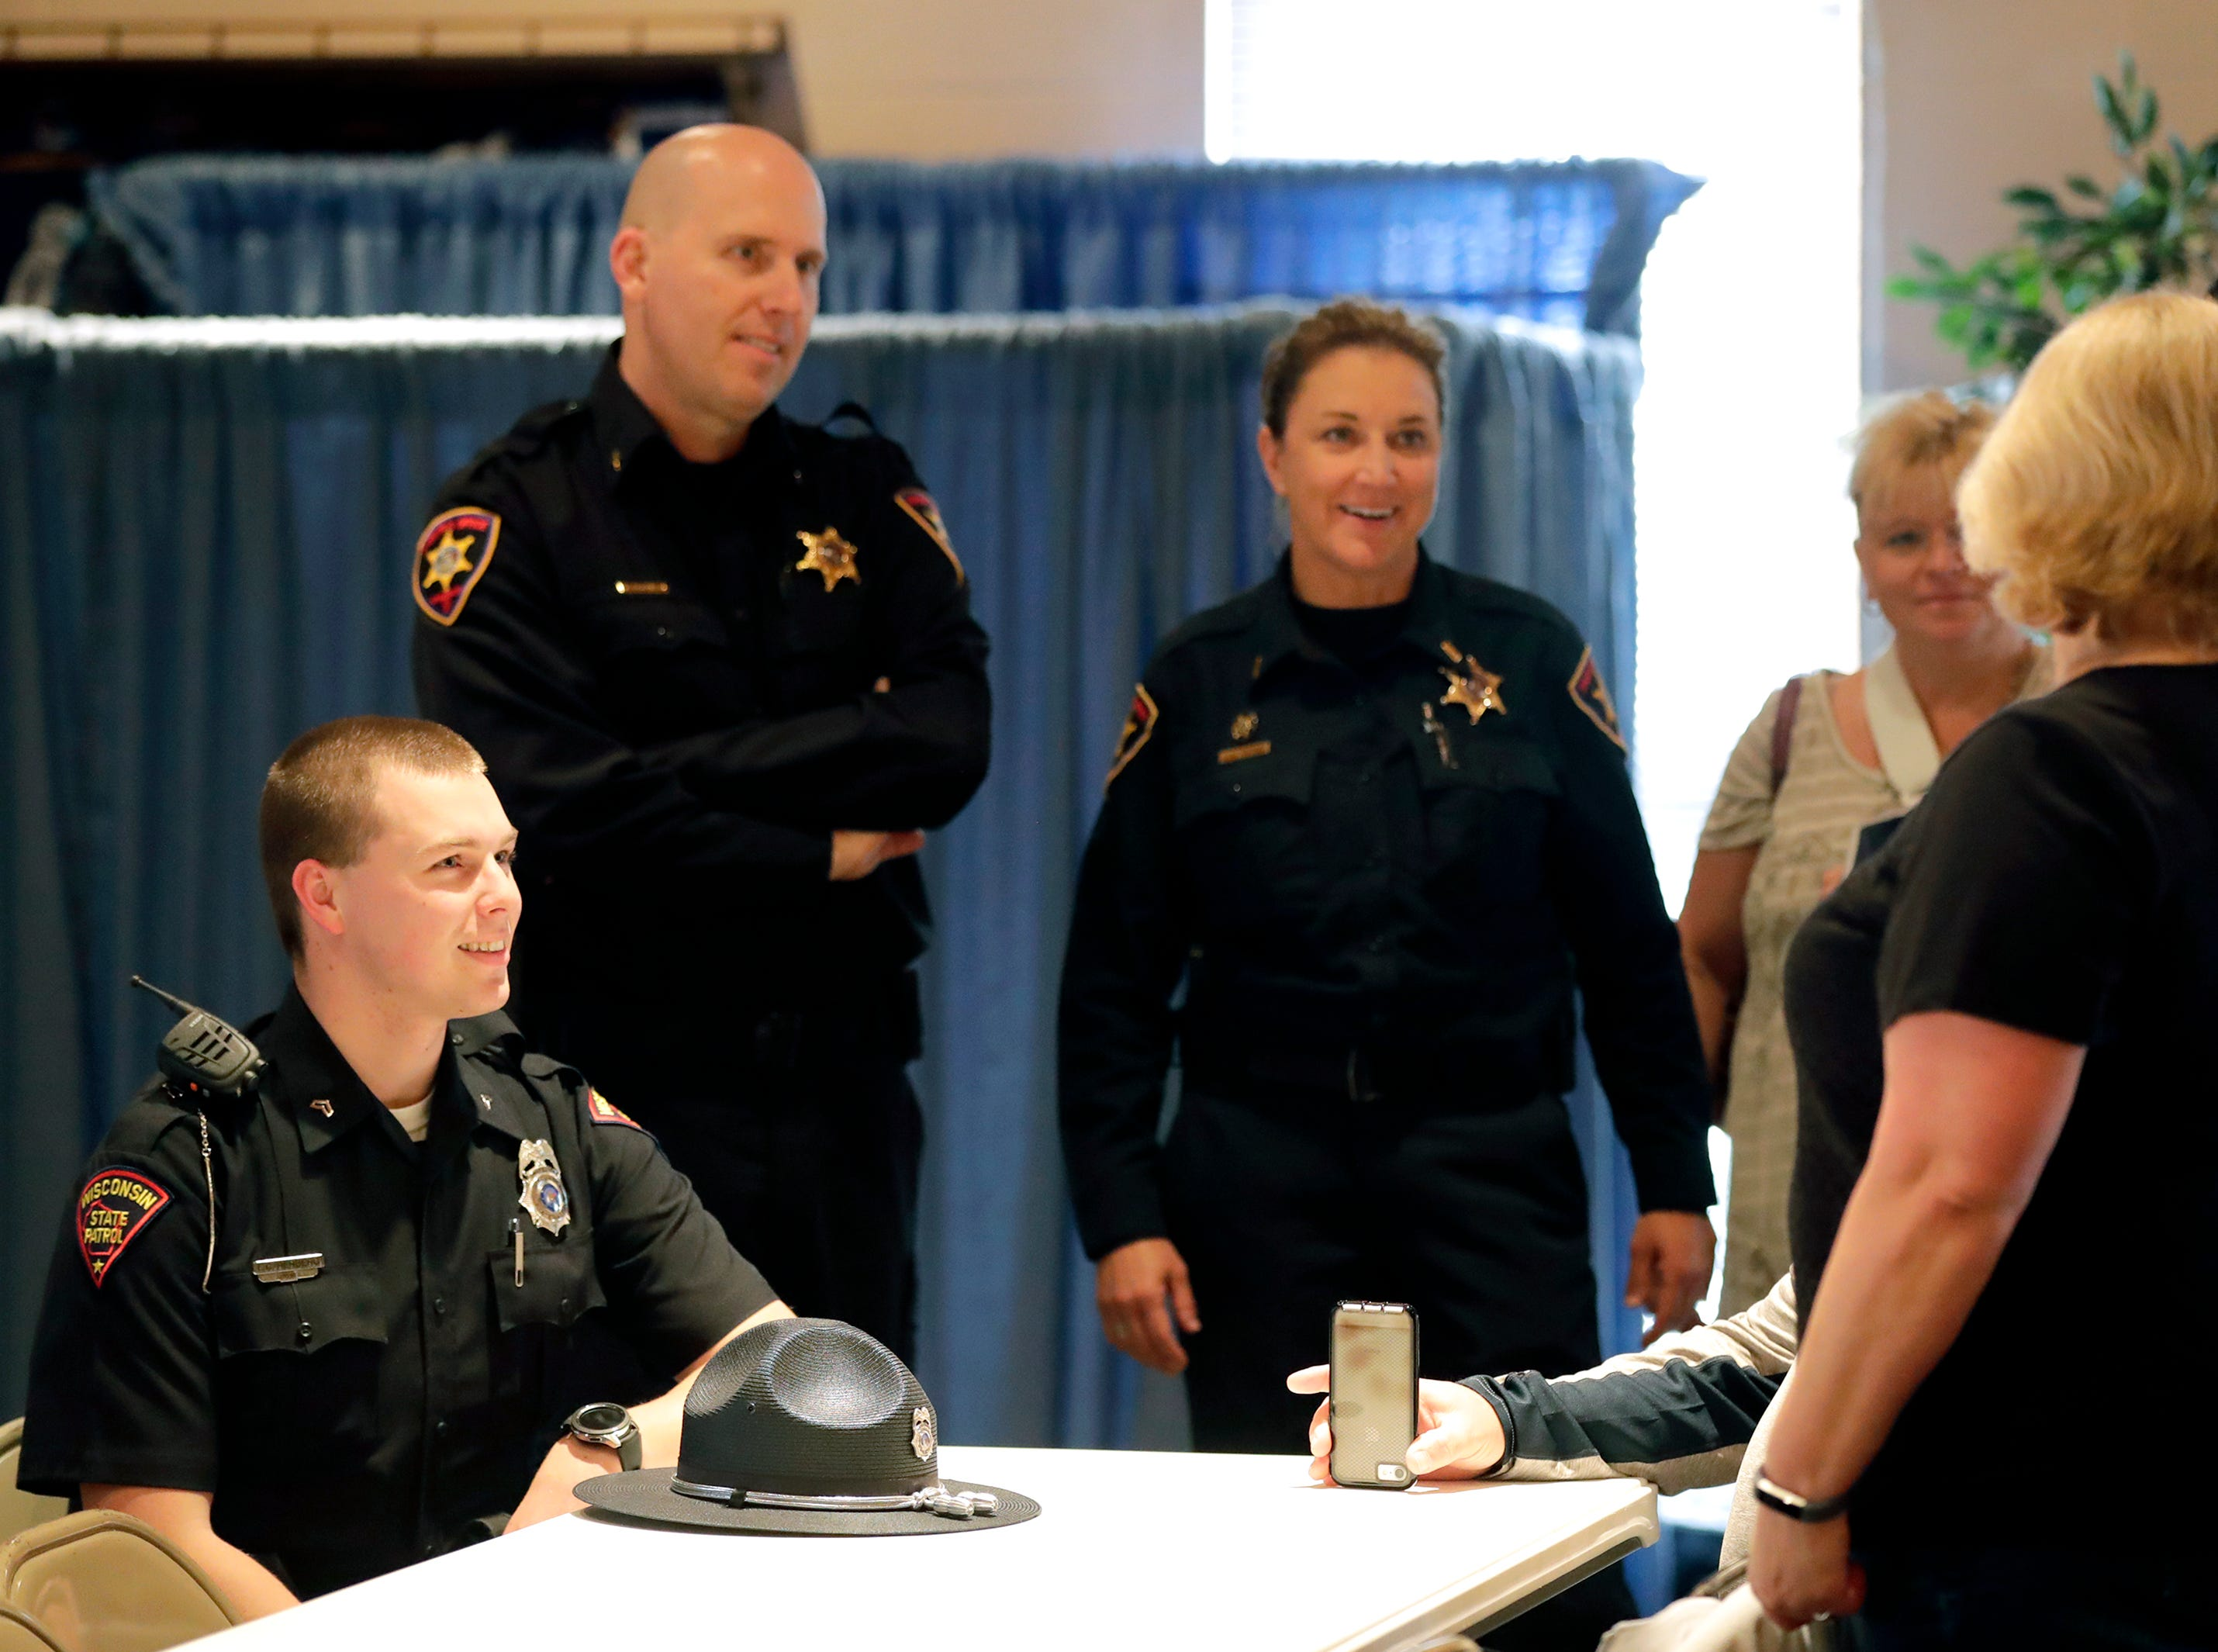 Wisconsin State Patrol Inspector Ethan Rehberg, seated, Chief Deputy Todd Christopherson and Lt. Lori Seiler, right, talk with other responders during the I-41 Mass Casualty Incident of Feb. 24, 2019 Recognition Event Tuesday, April 16, 2019, at Gloria Dei Lutheran Church in Neenah, Wis. Christopherson and Seiler are with the Winnebago County Sheriff's Department.Dan Powers/USA TODAY NETWORK-Wisconsin